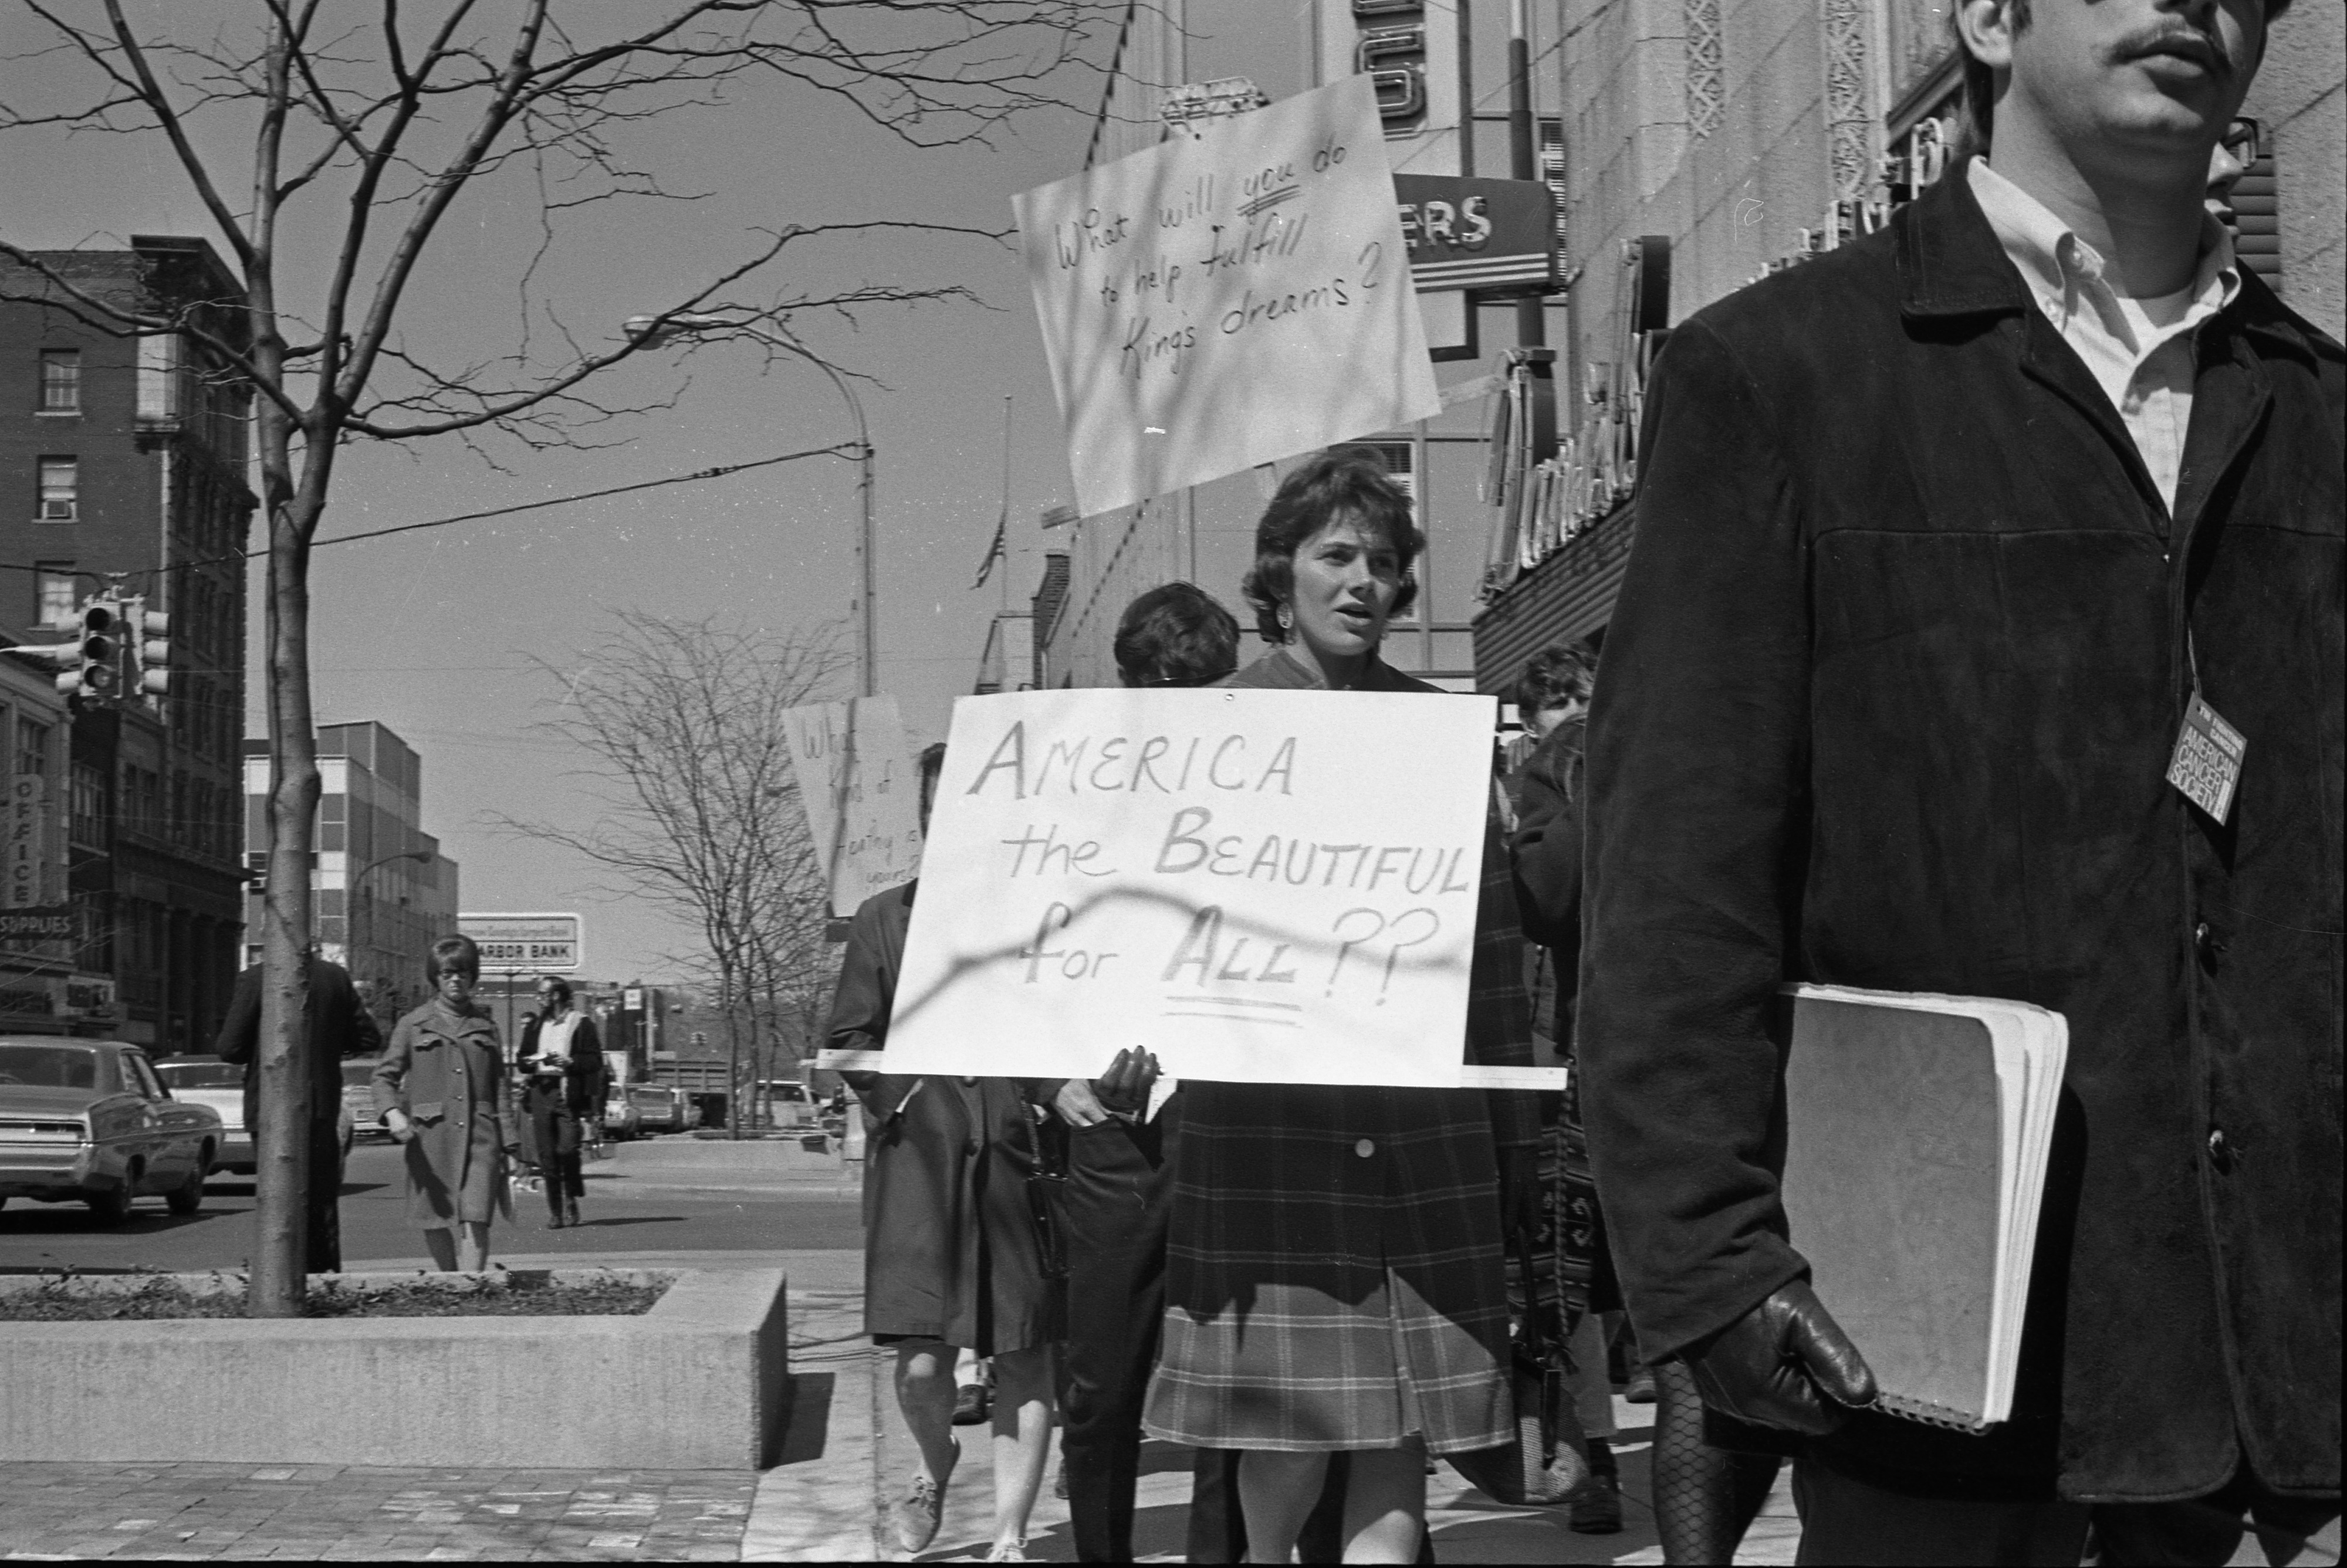 Marching On Main Street With Signs After Martin Luther King Jr Memorial Services, April 1968 image